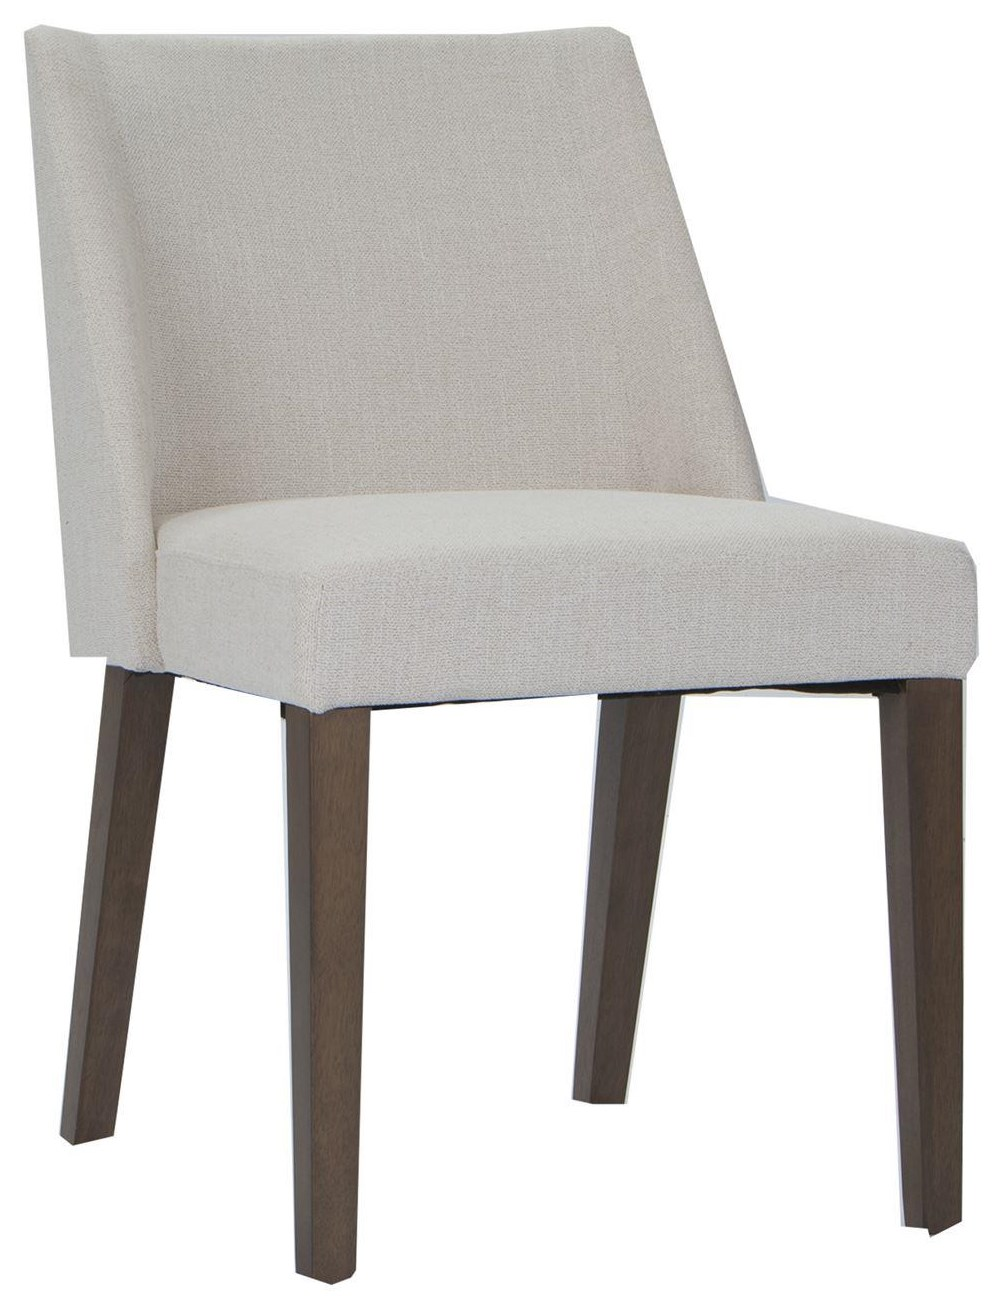 Space Savers Nido Chair  by Freedom Furniture at Ruby Gordon Home